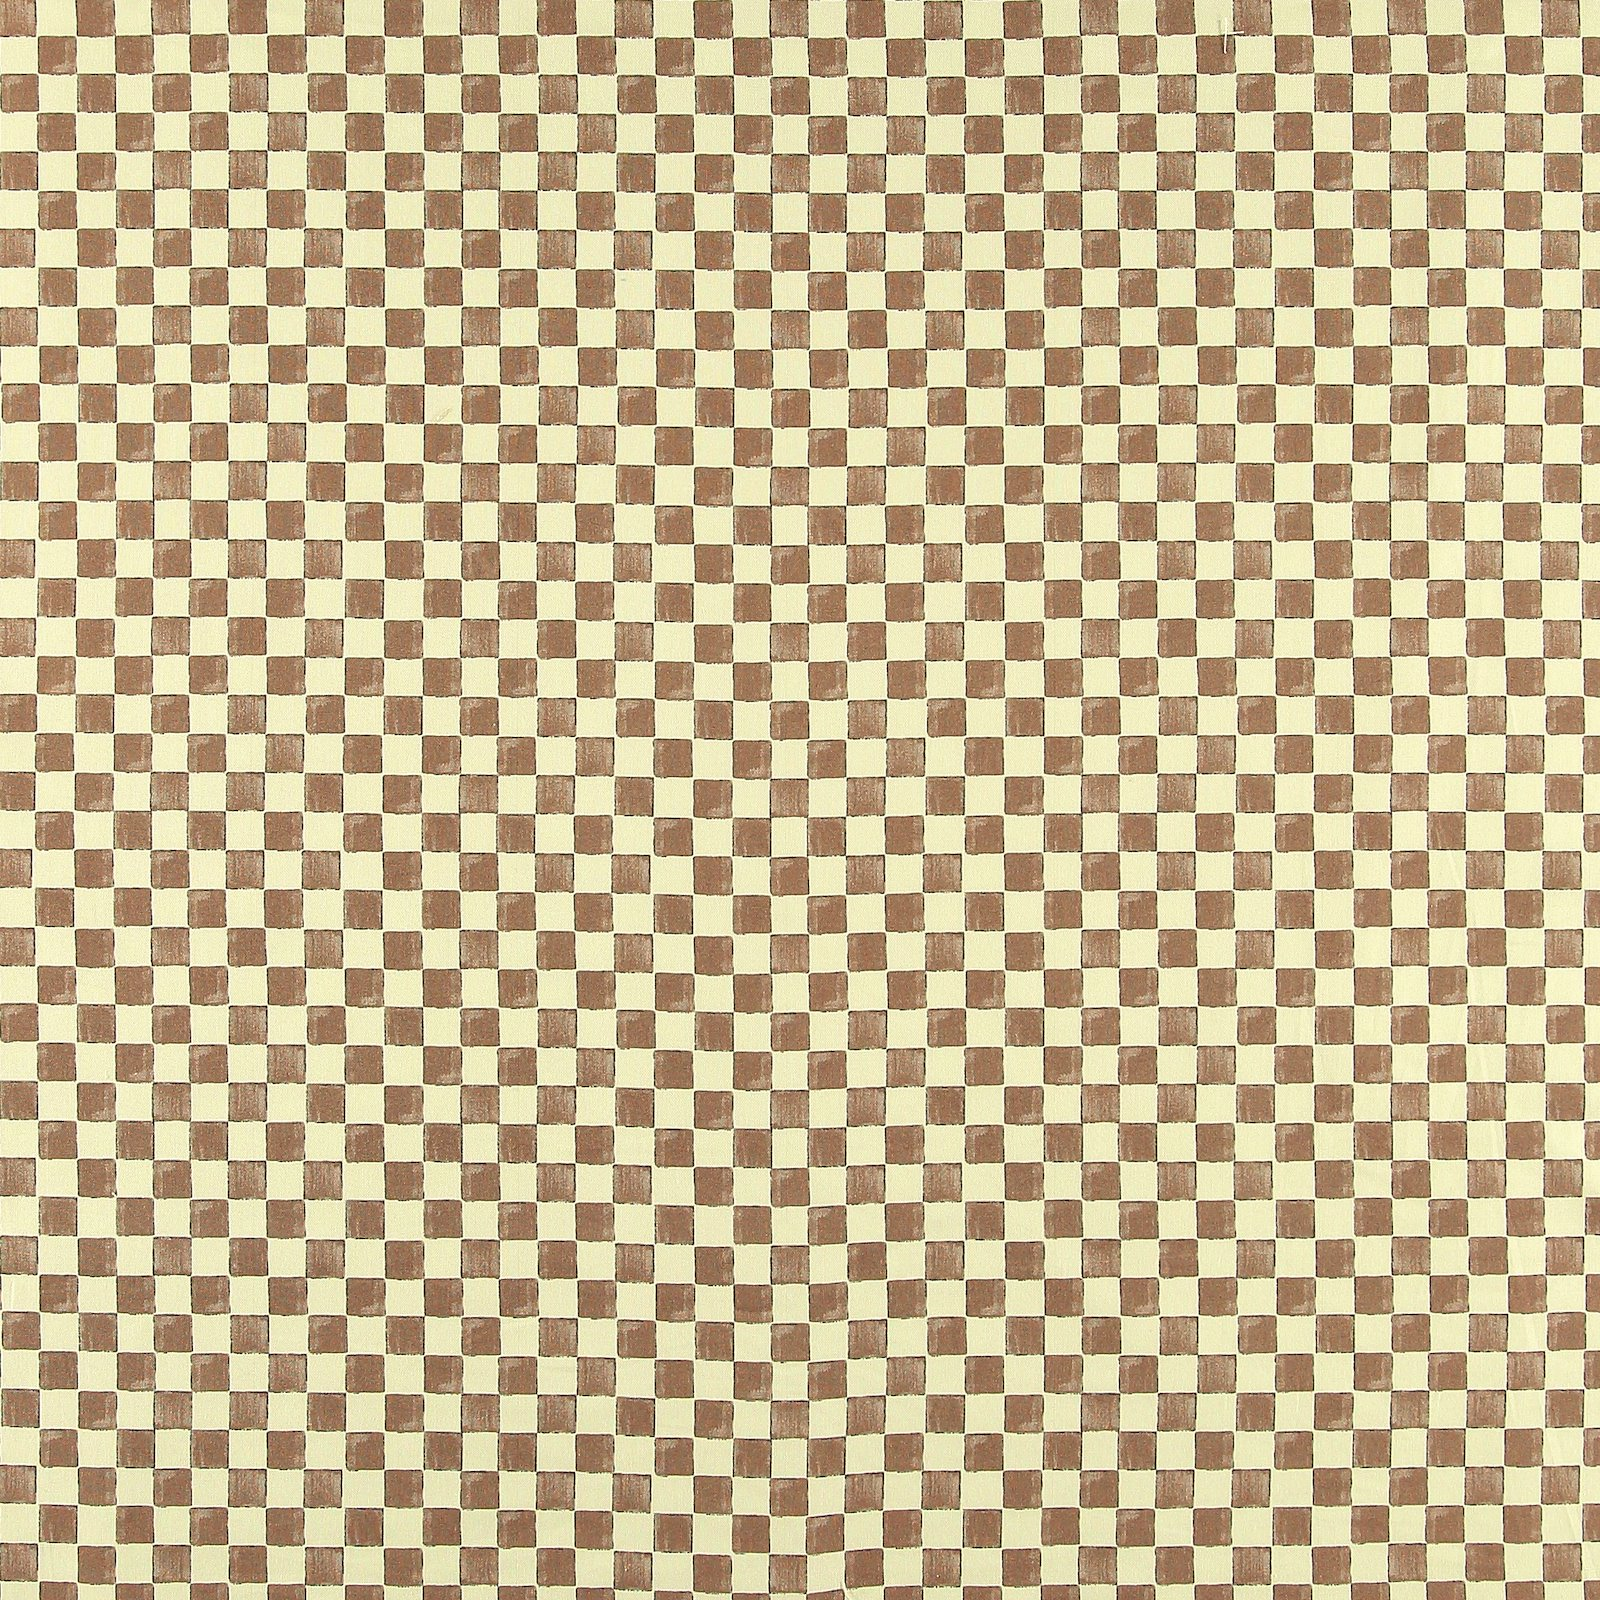 Printed cotton sage/dusty olive checks 780568_pack_sp